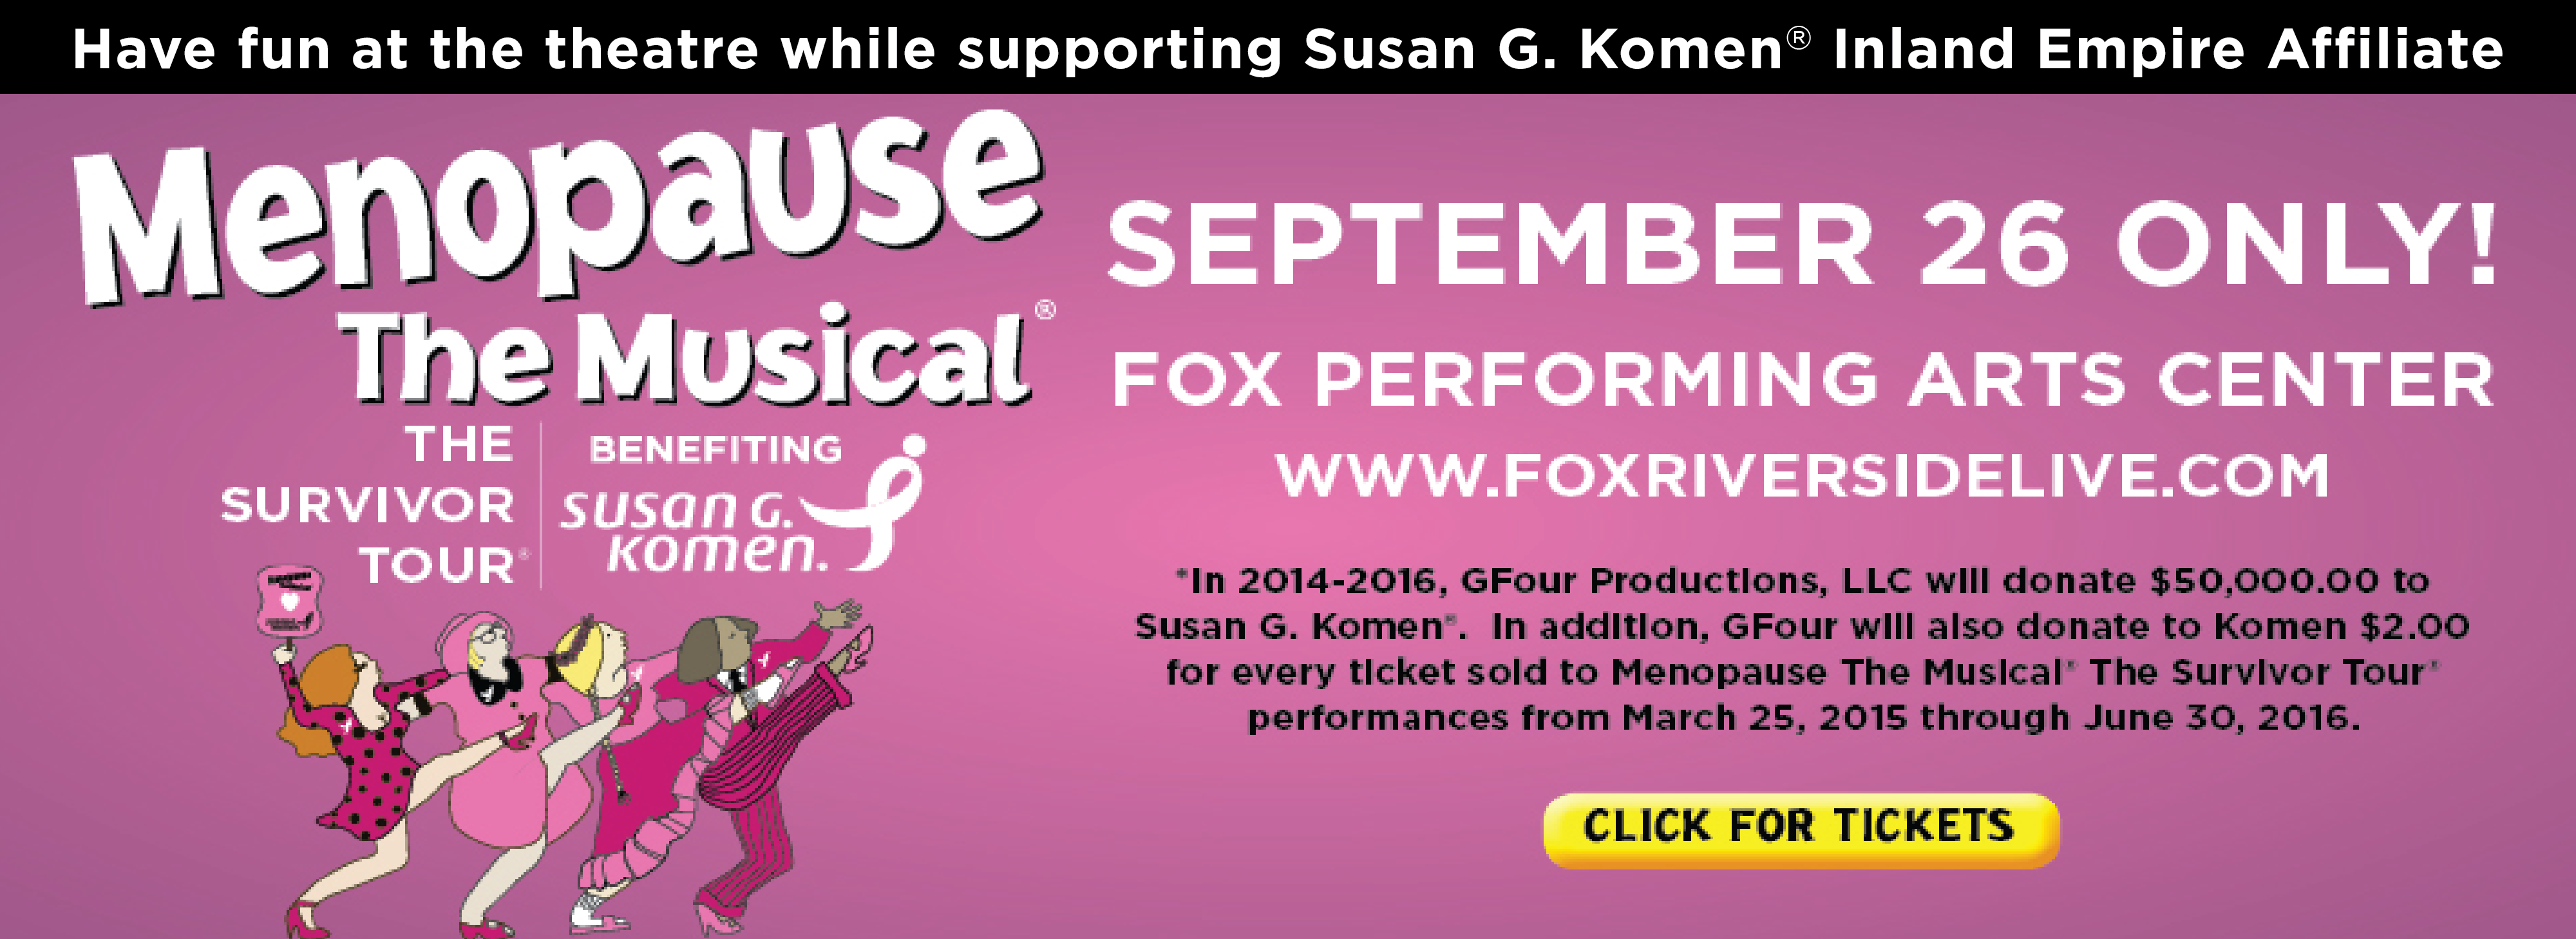 menopause-the-musical-banner-2015-edit-7.28-01